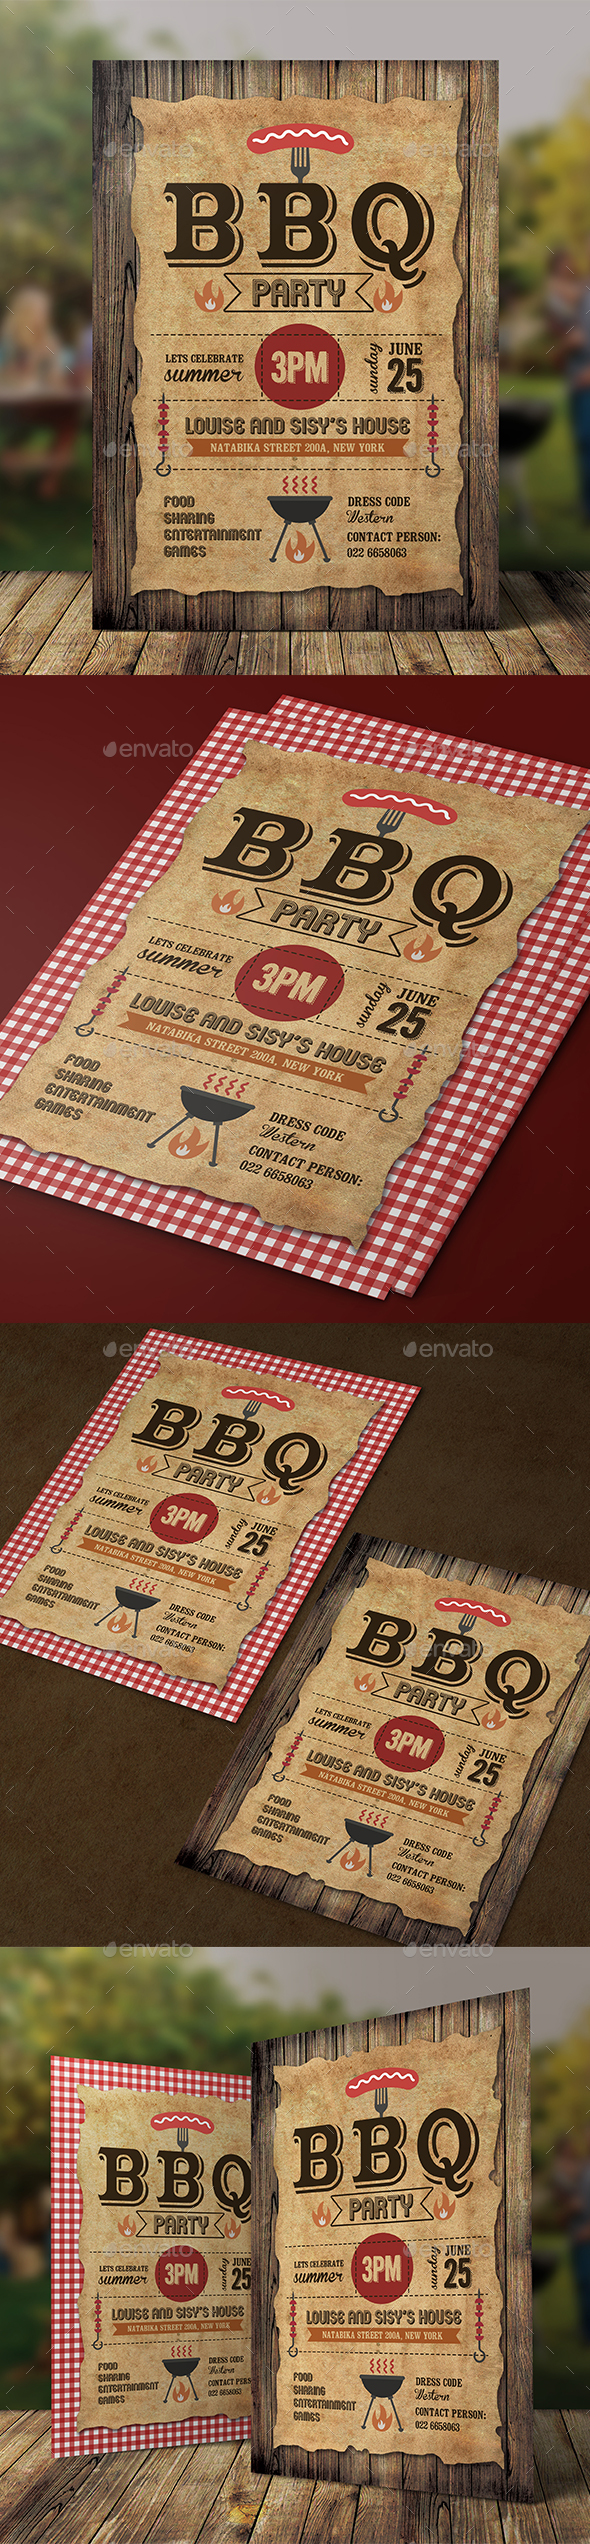 BBQ Invitation - Clubs & Parties Events